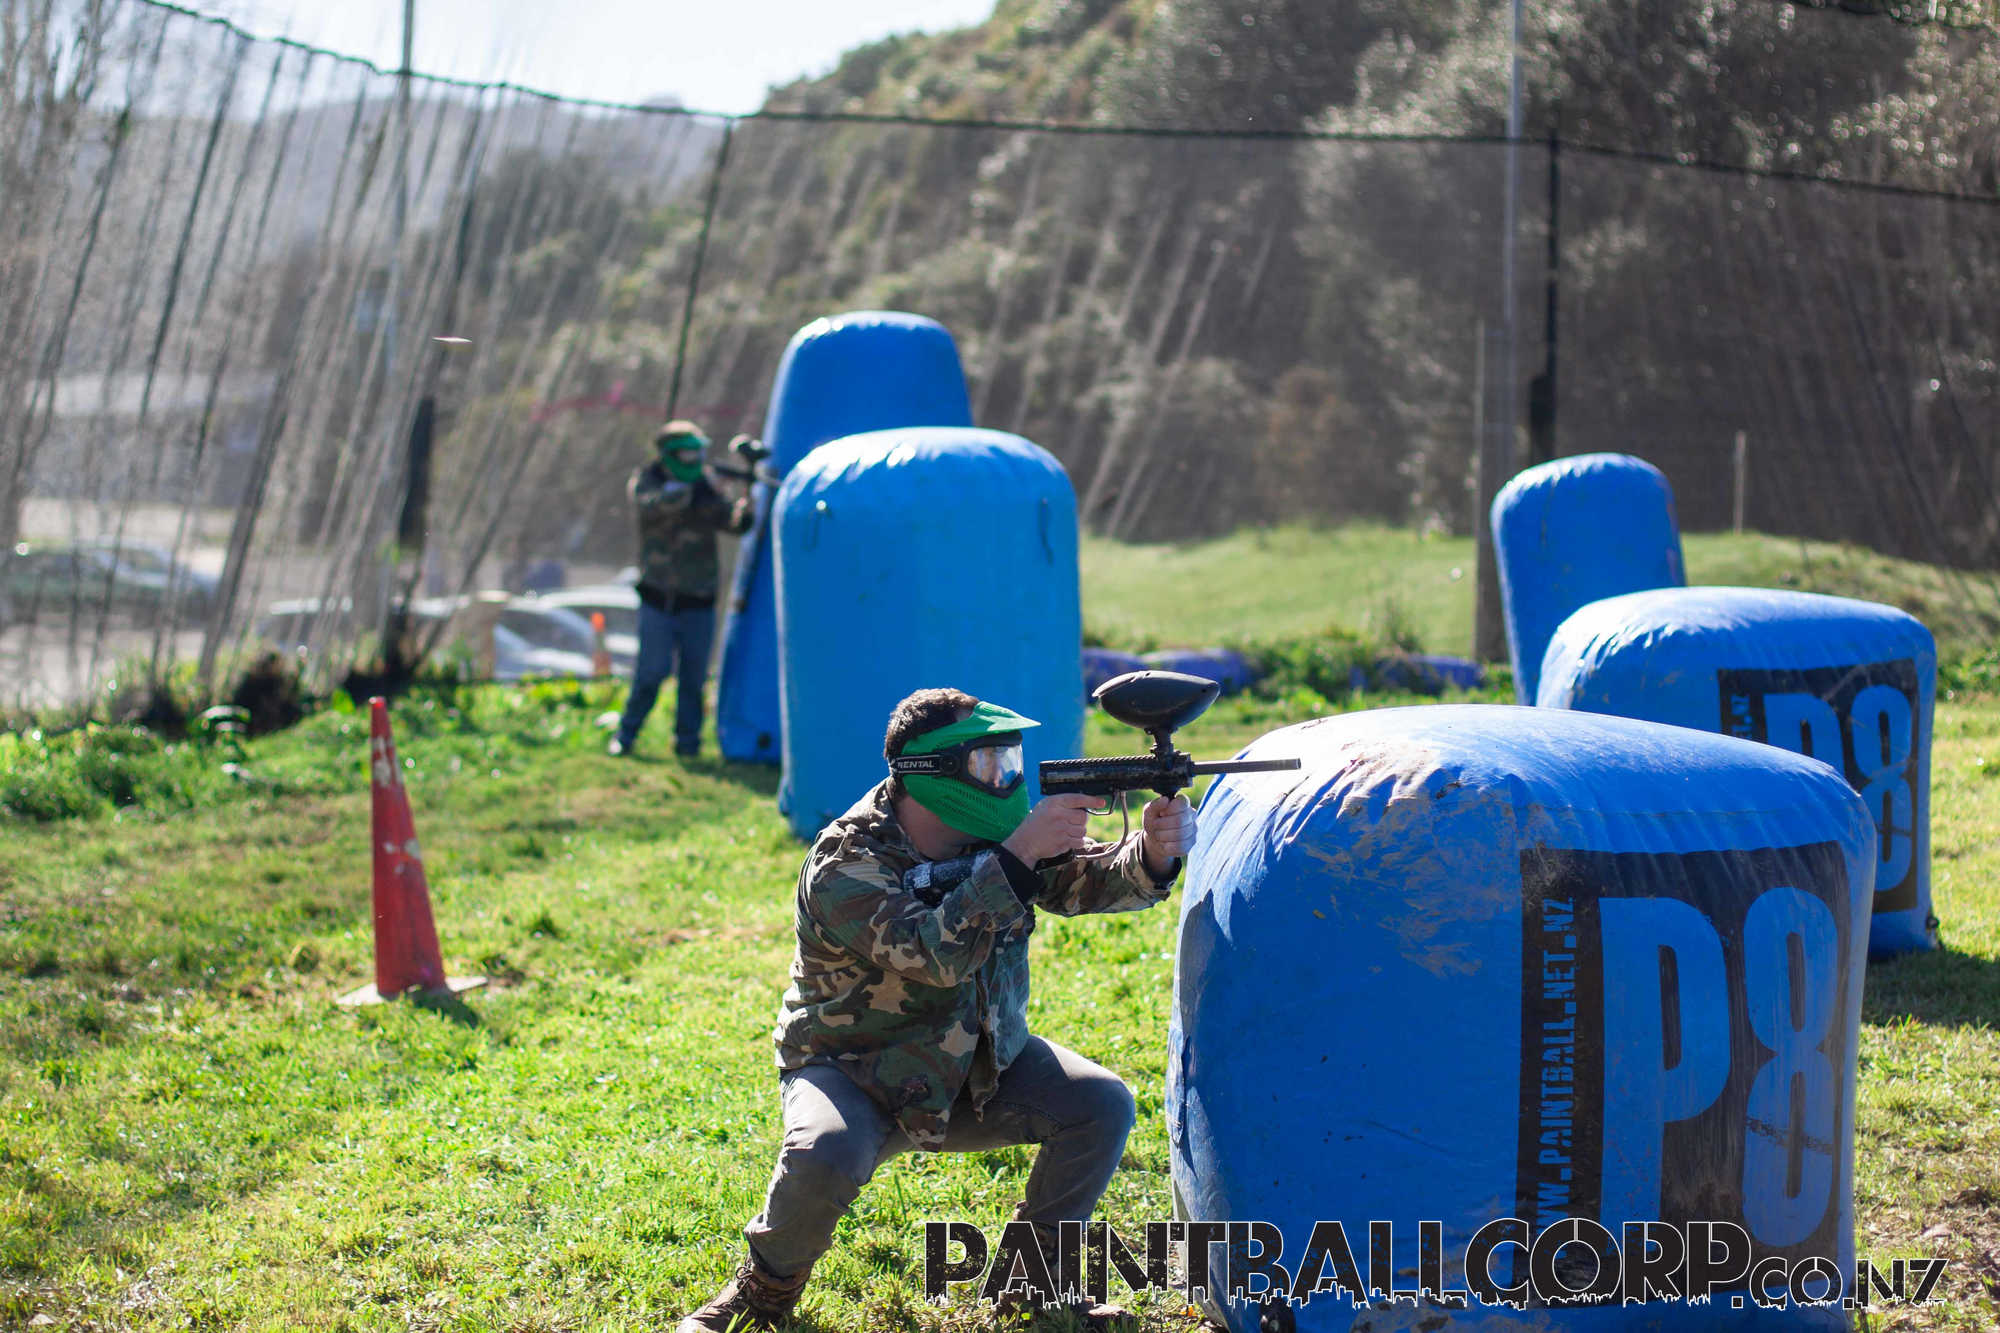 Paintball Corp3.jpg